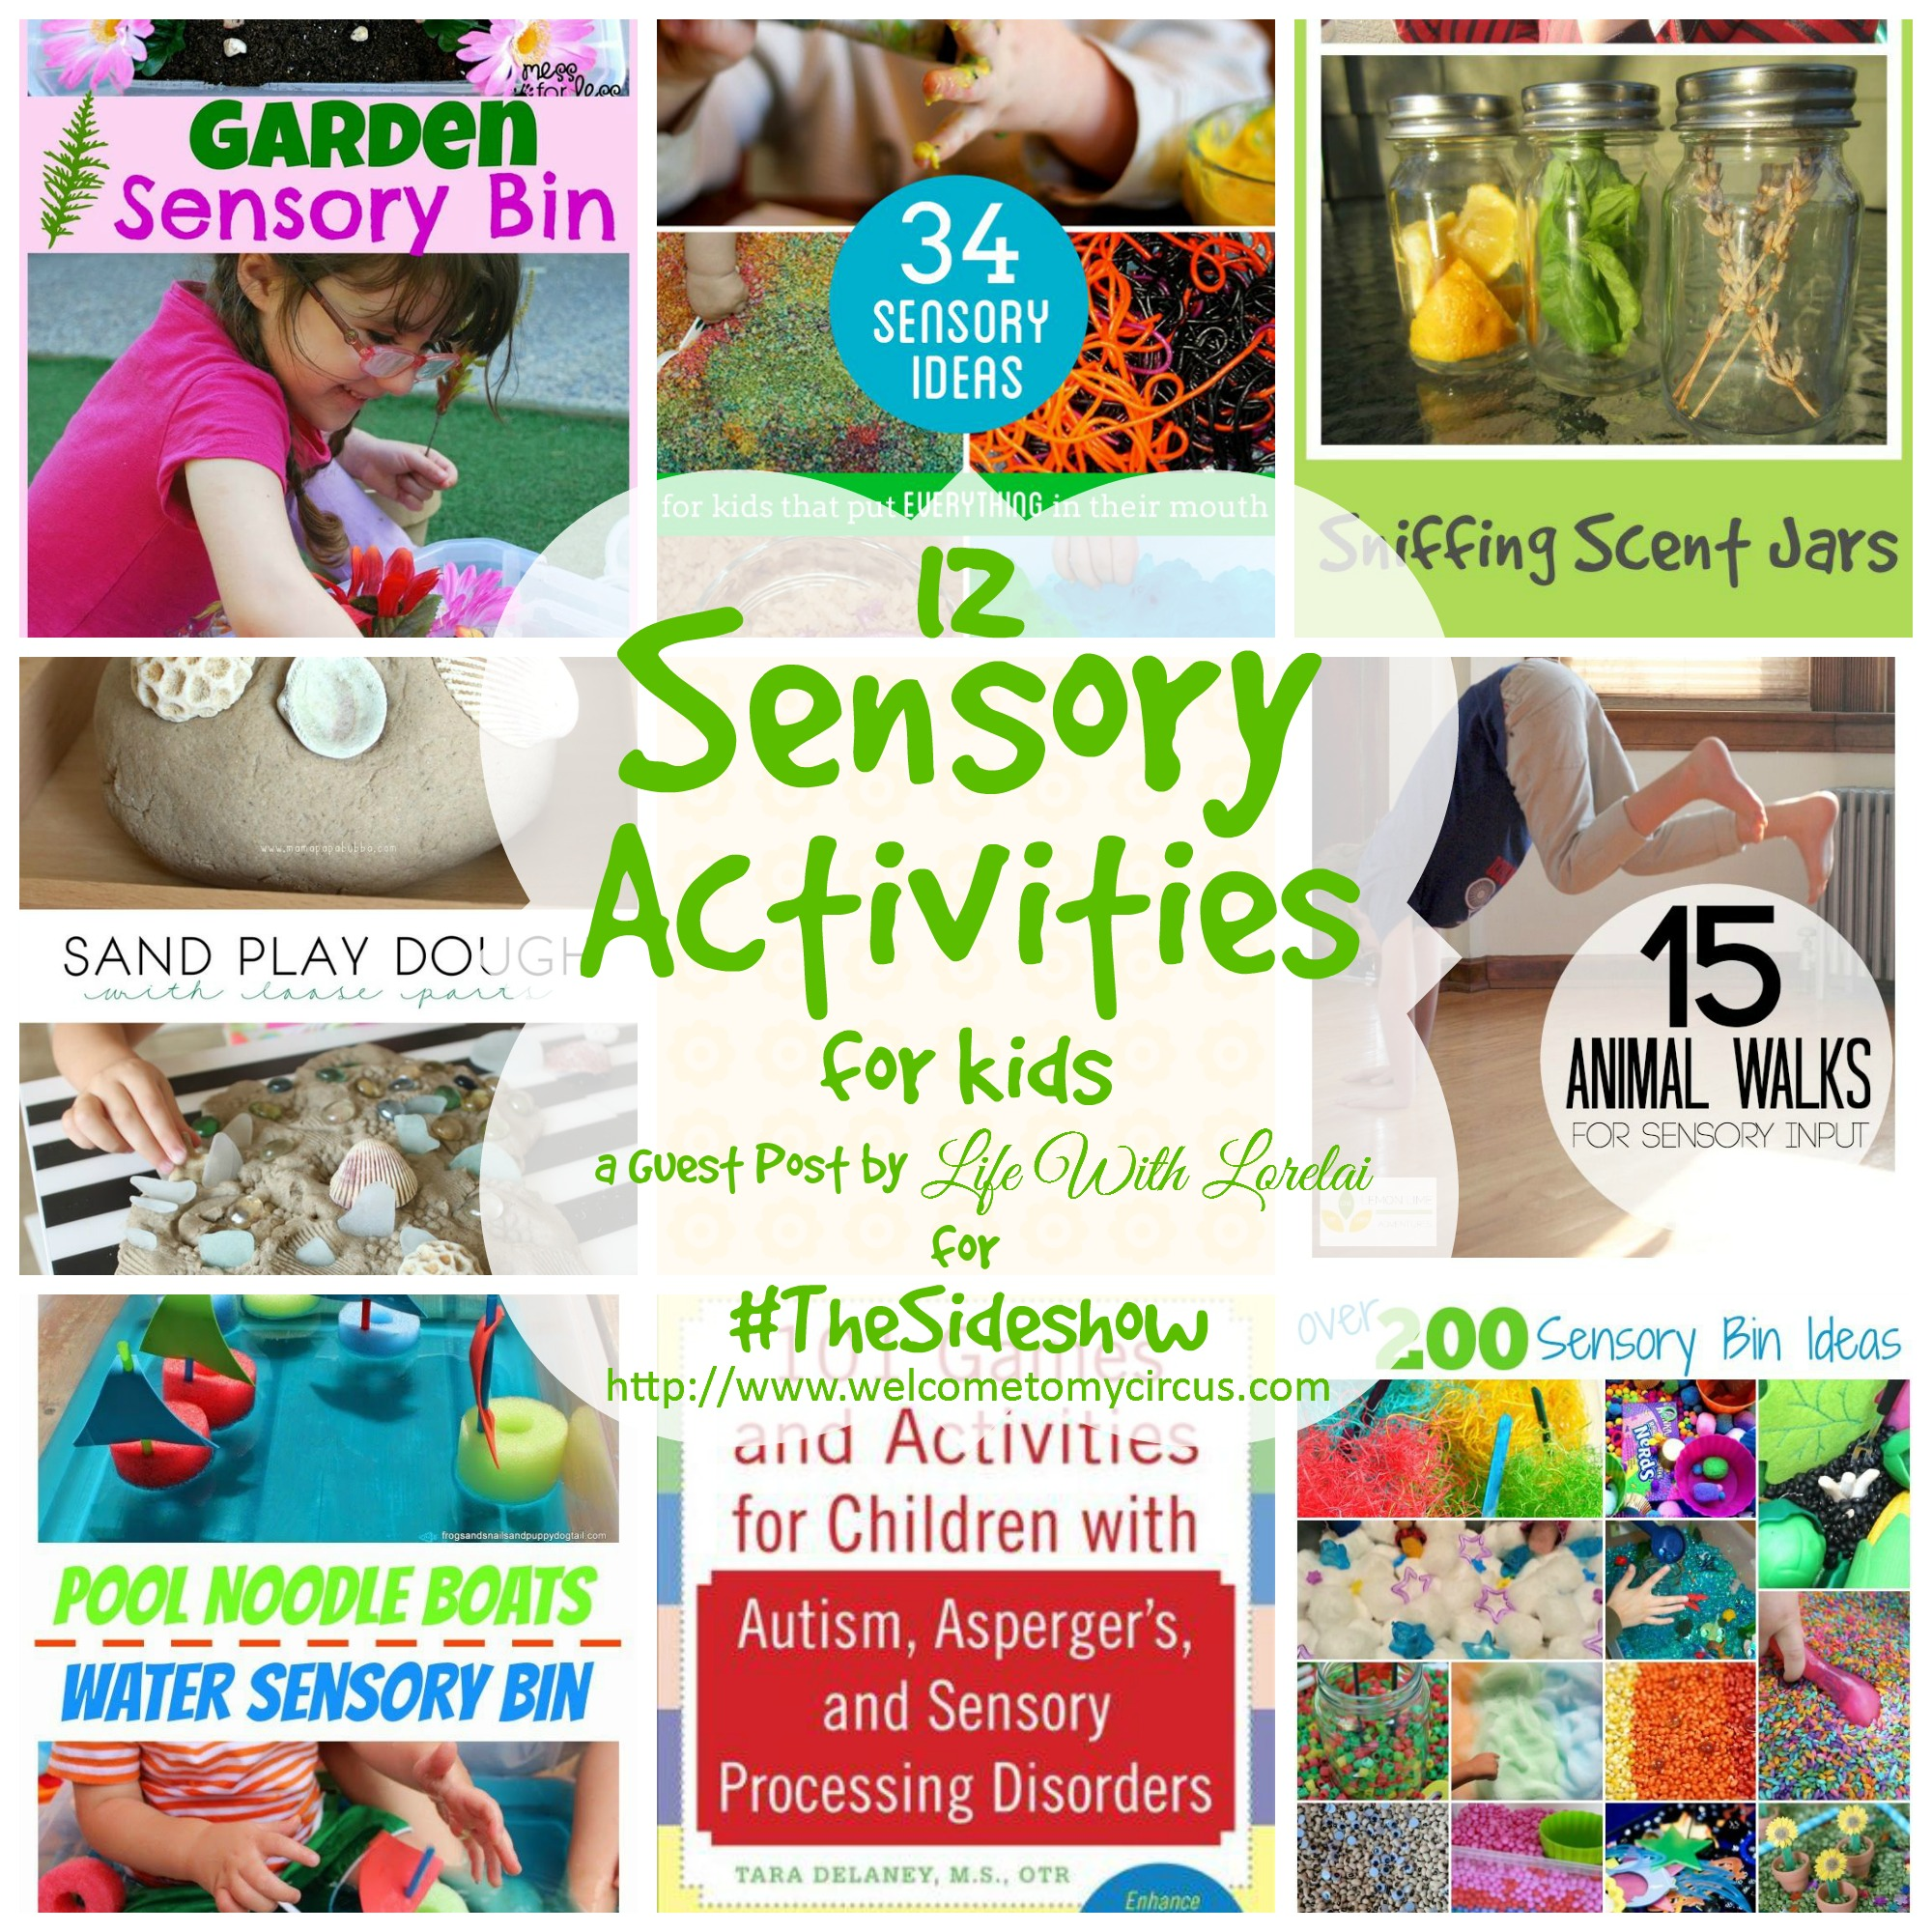 12 Sensory Activities for Kids - Life With Lorelai - The Sideshow